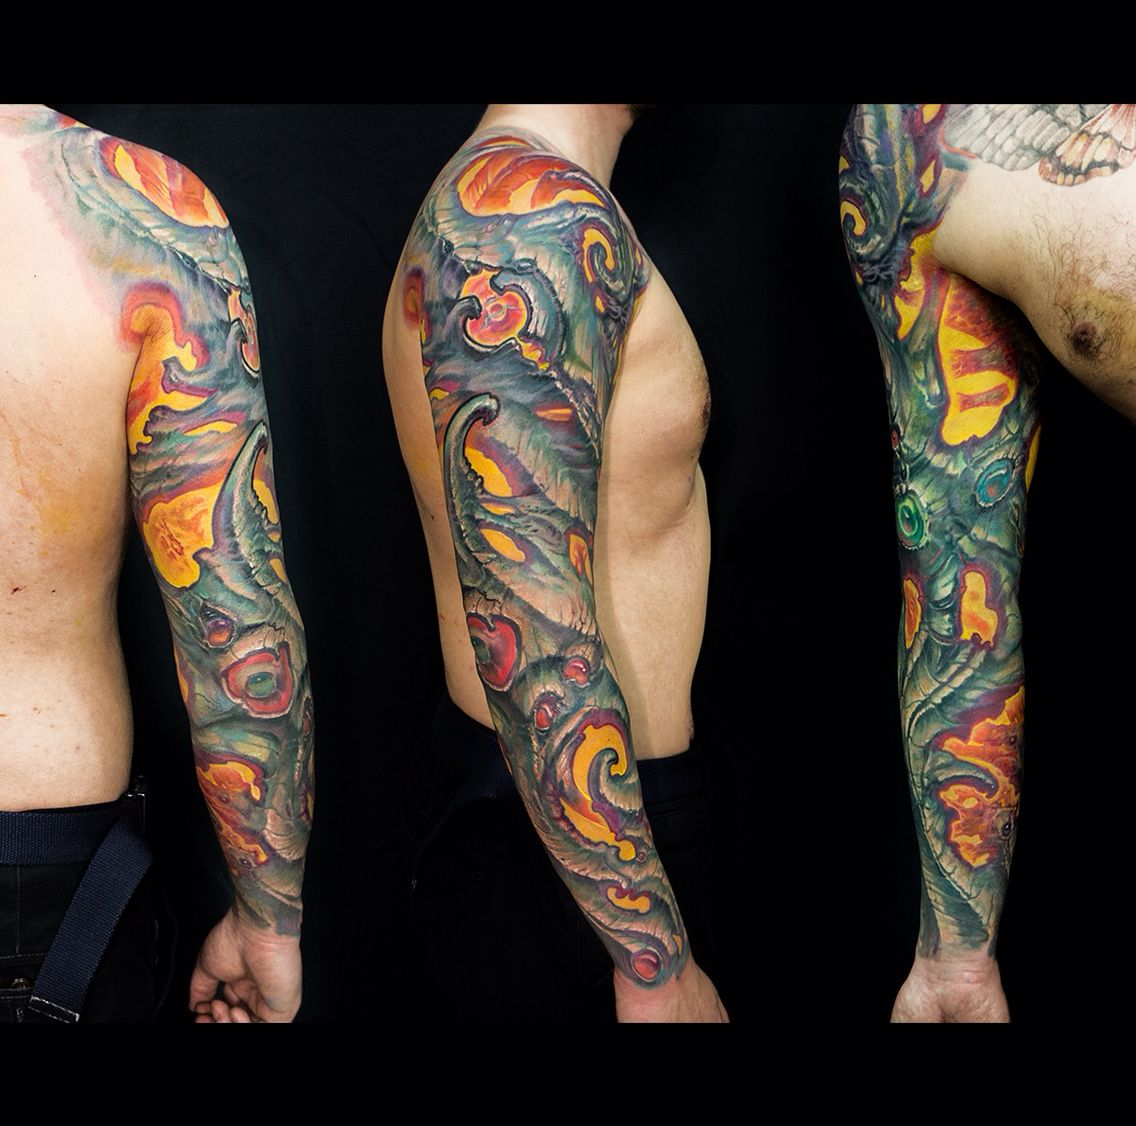 Biomechanik Tattoo Ganzer Arm bioorganic #biomech #putyatin #tattoo #mech